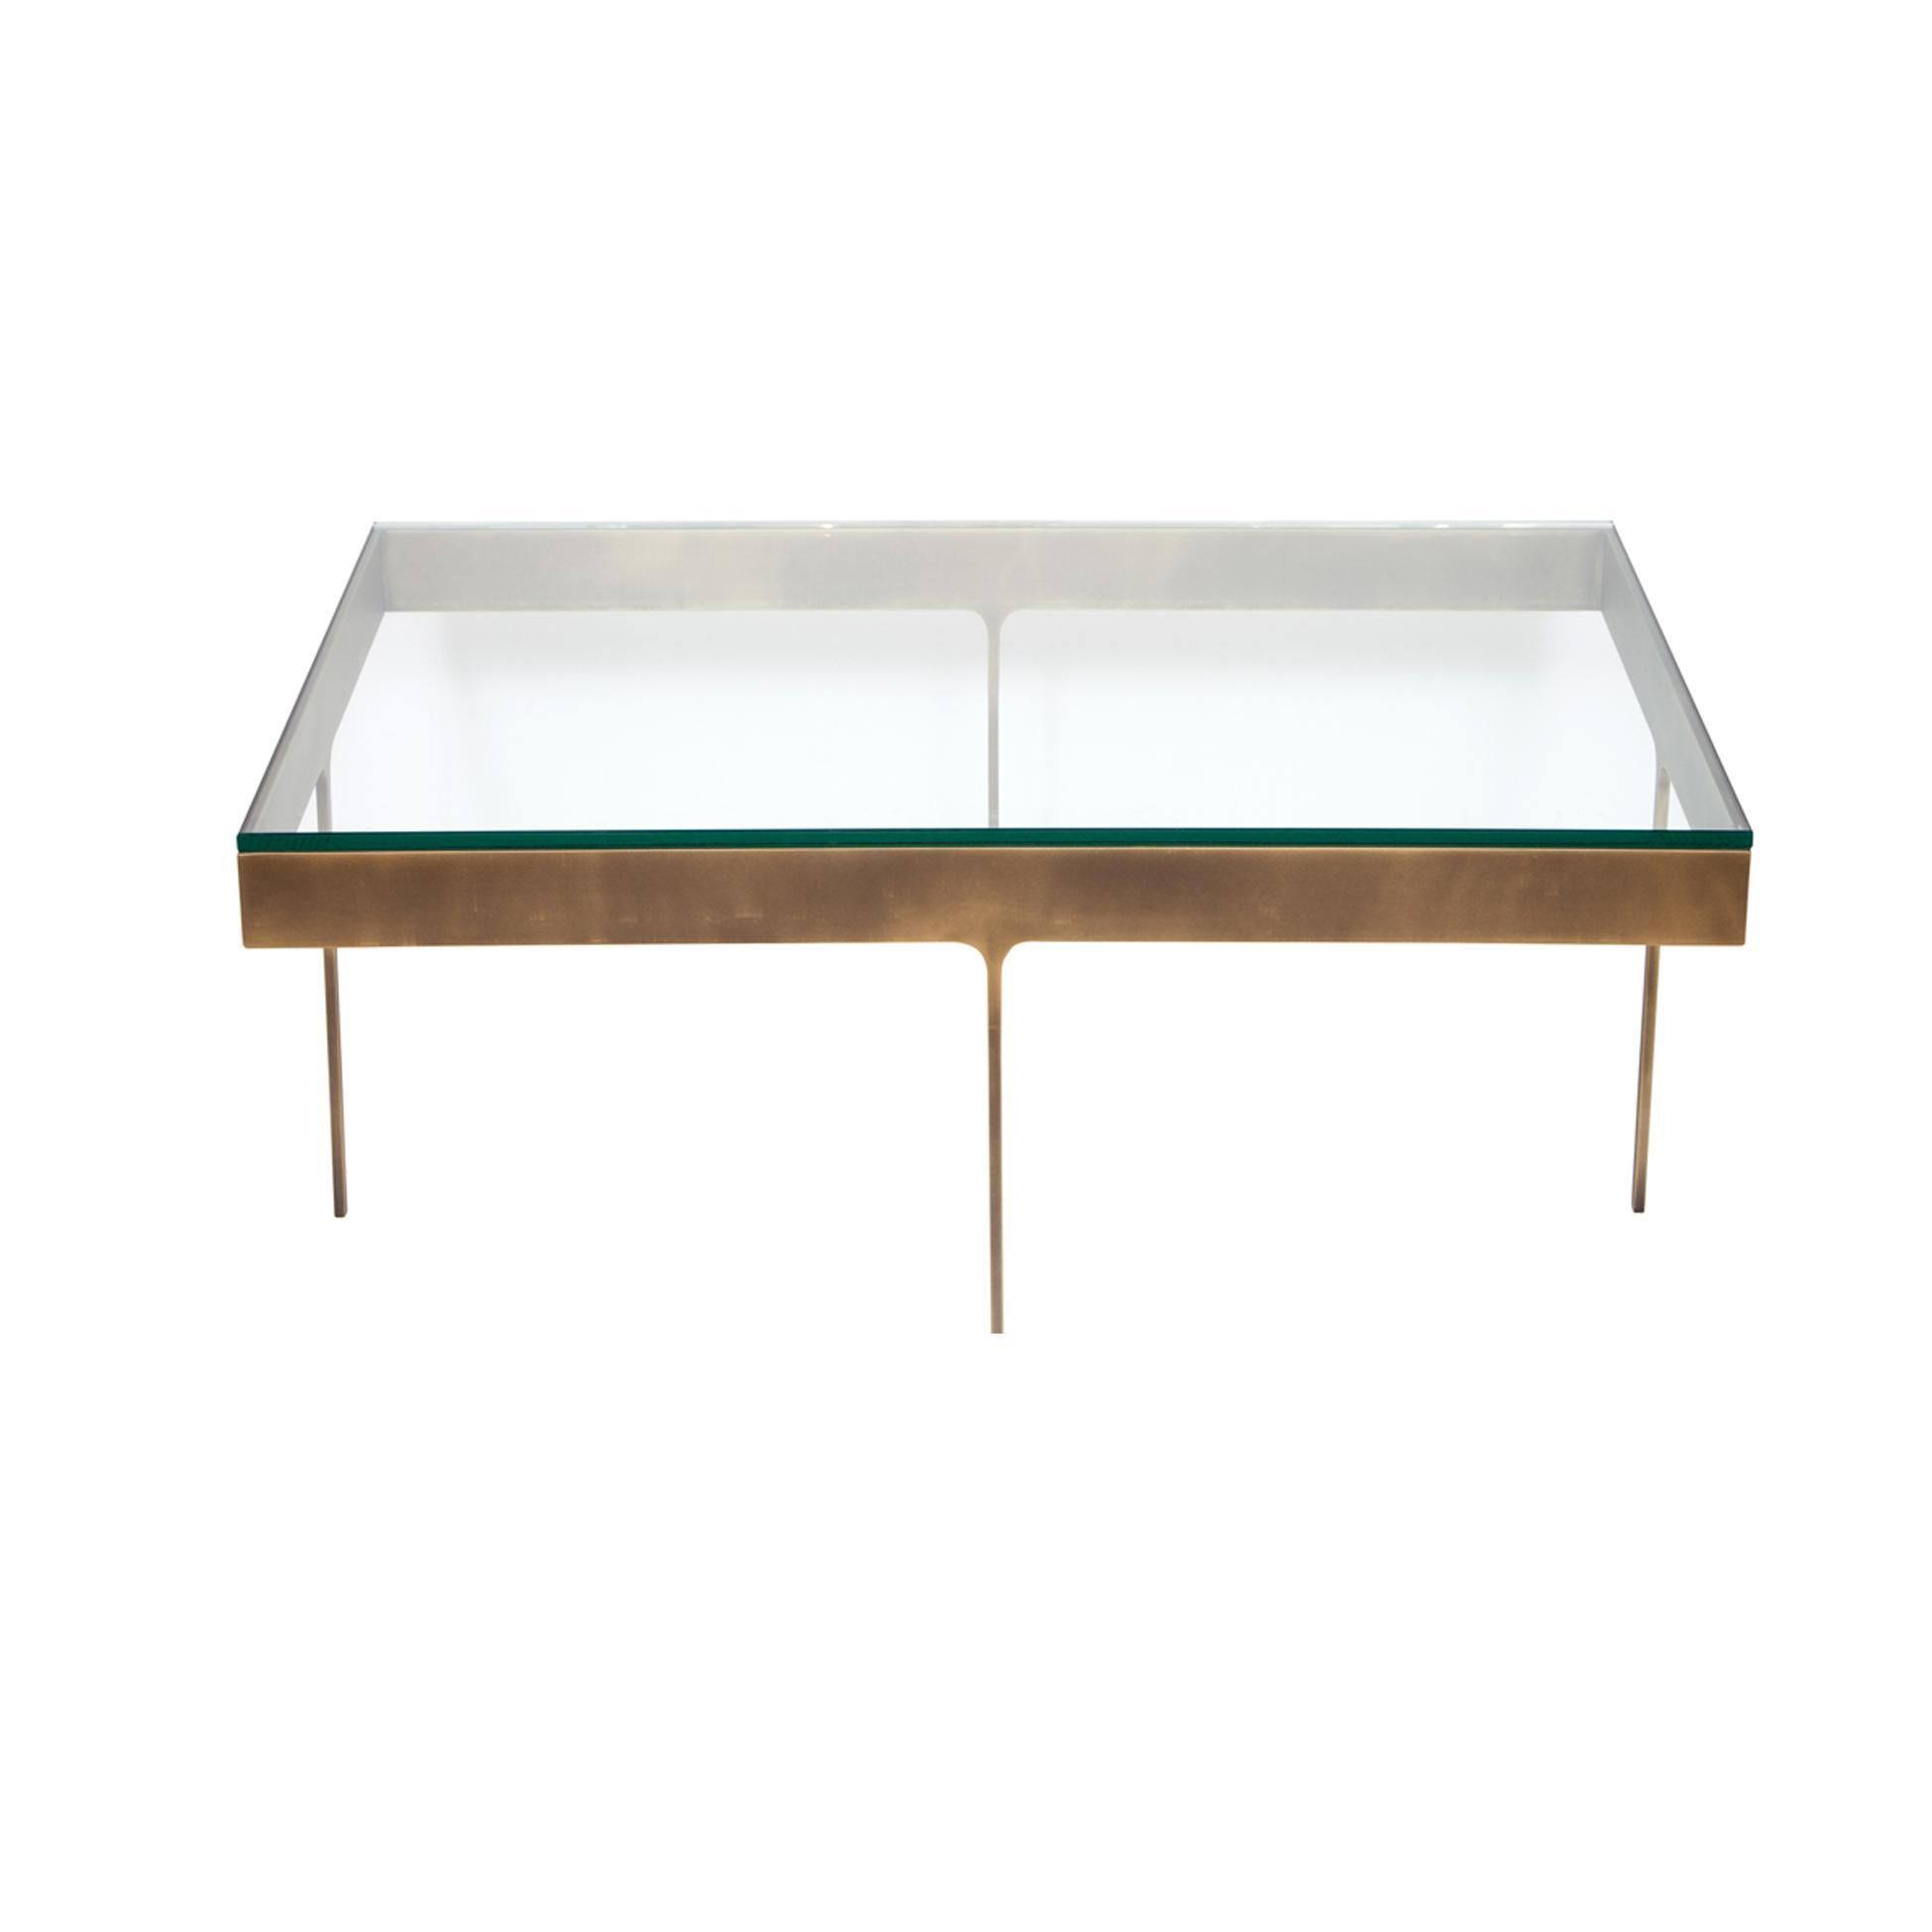 Excellent Haworth Square Table Decaso Coffee Table Furniture Coffee Table Coffee Table Furniture Square Tables [ 1950 x 1950 Pixel ]